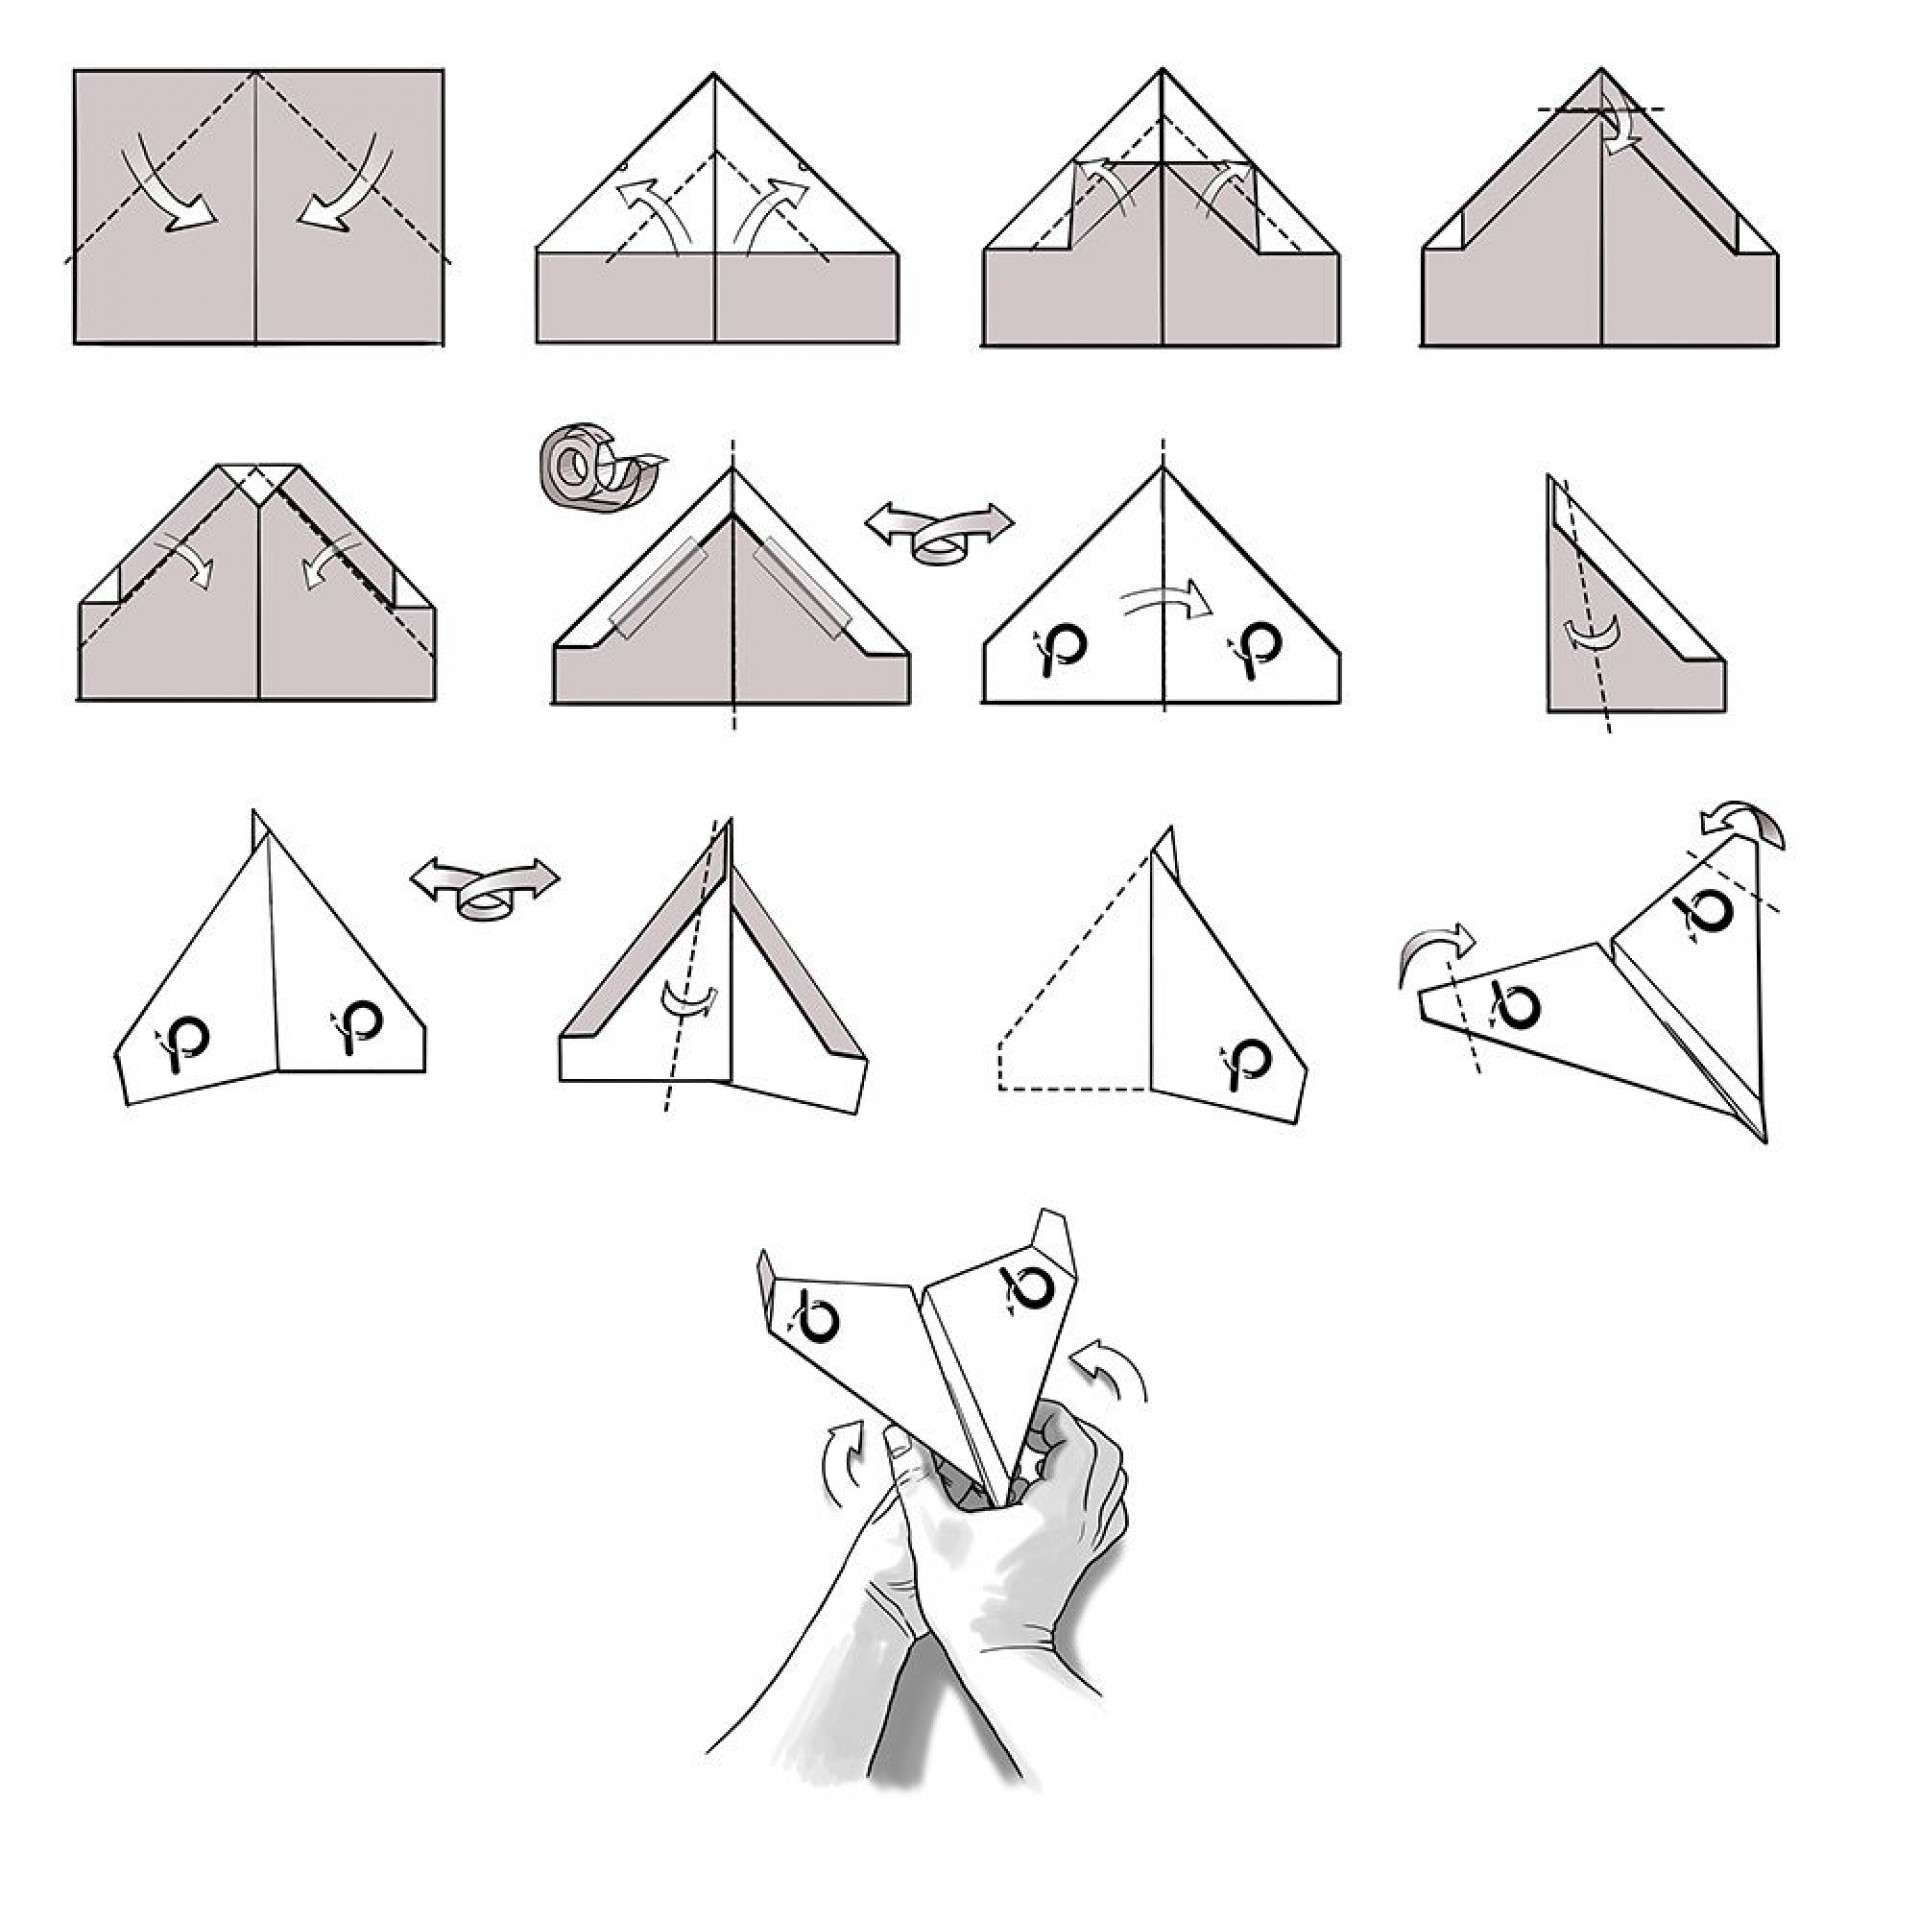 009 Unusual Printable Paper Airplane Folding Instruction High Resolution 1920